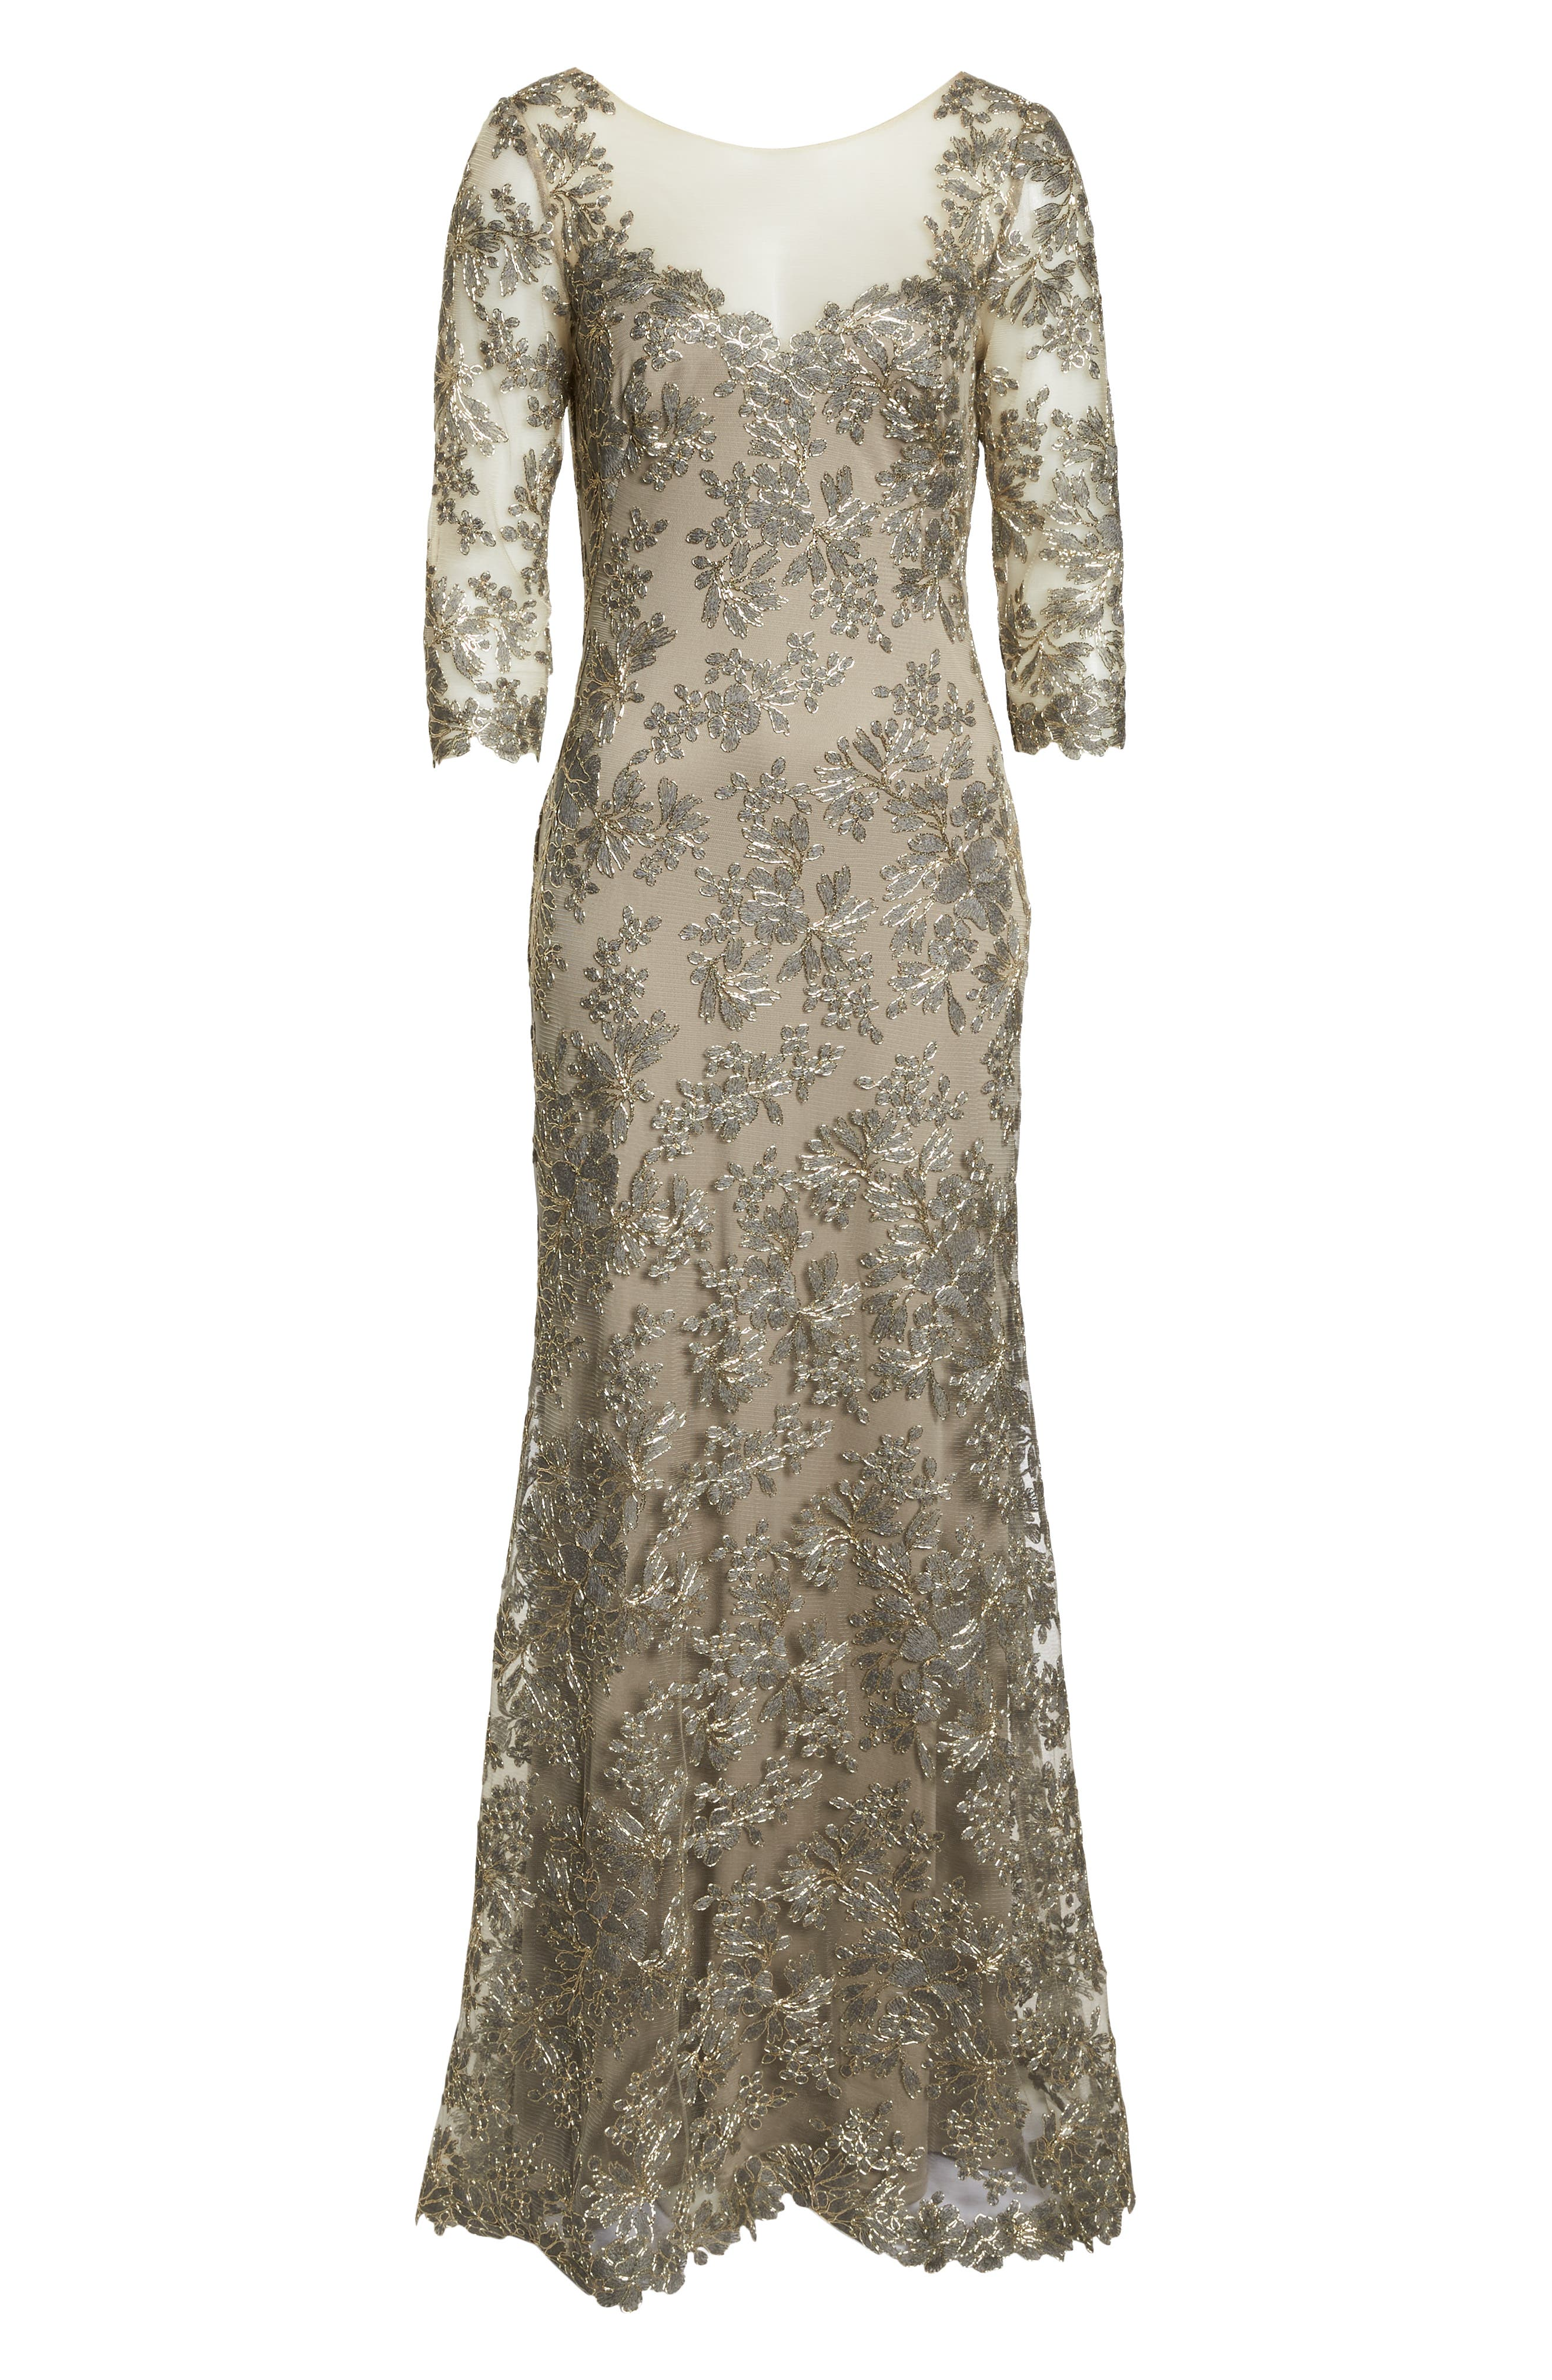 TADASHI SHOJI, Corded Embroidered Lace Gown, Alternate thumbnail 7, color, SMOKE PEARL